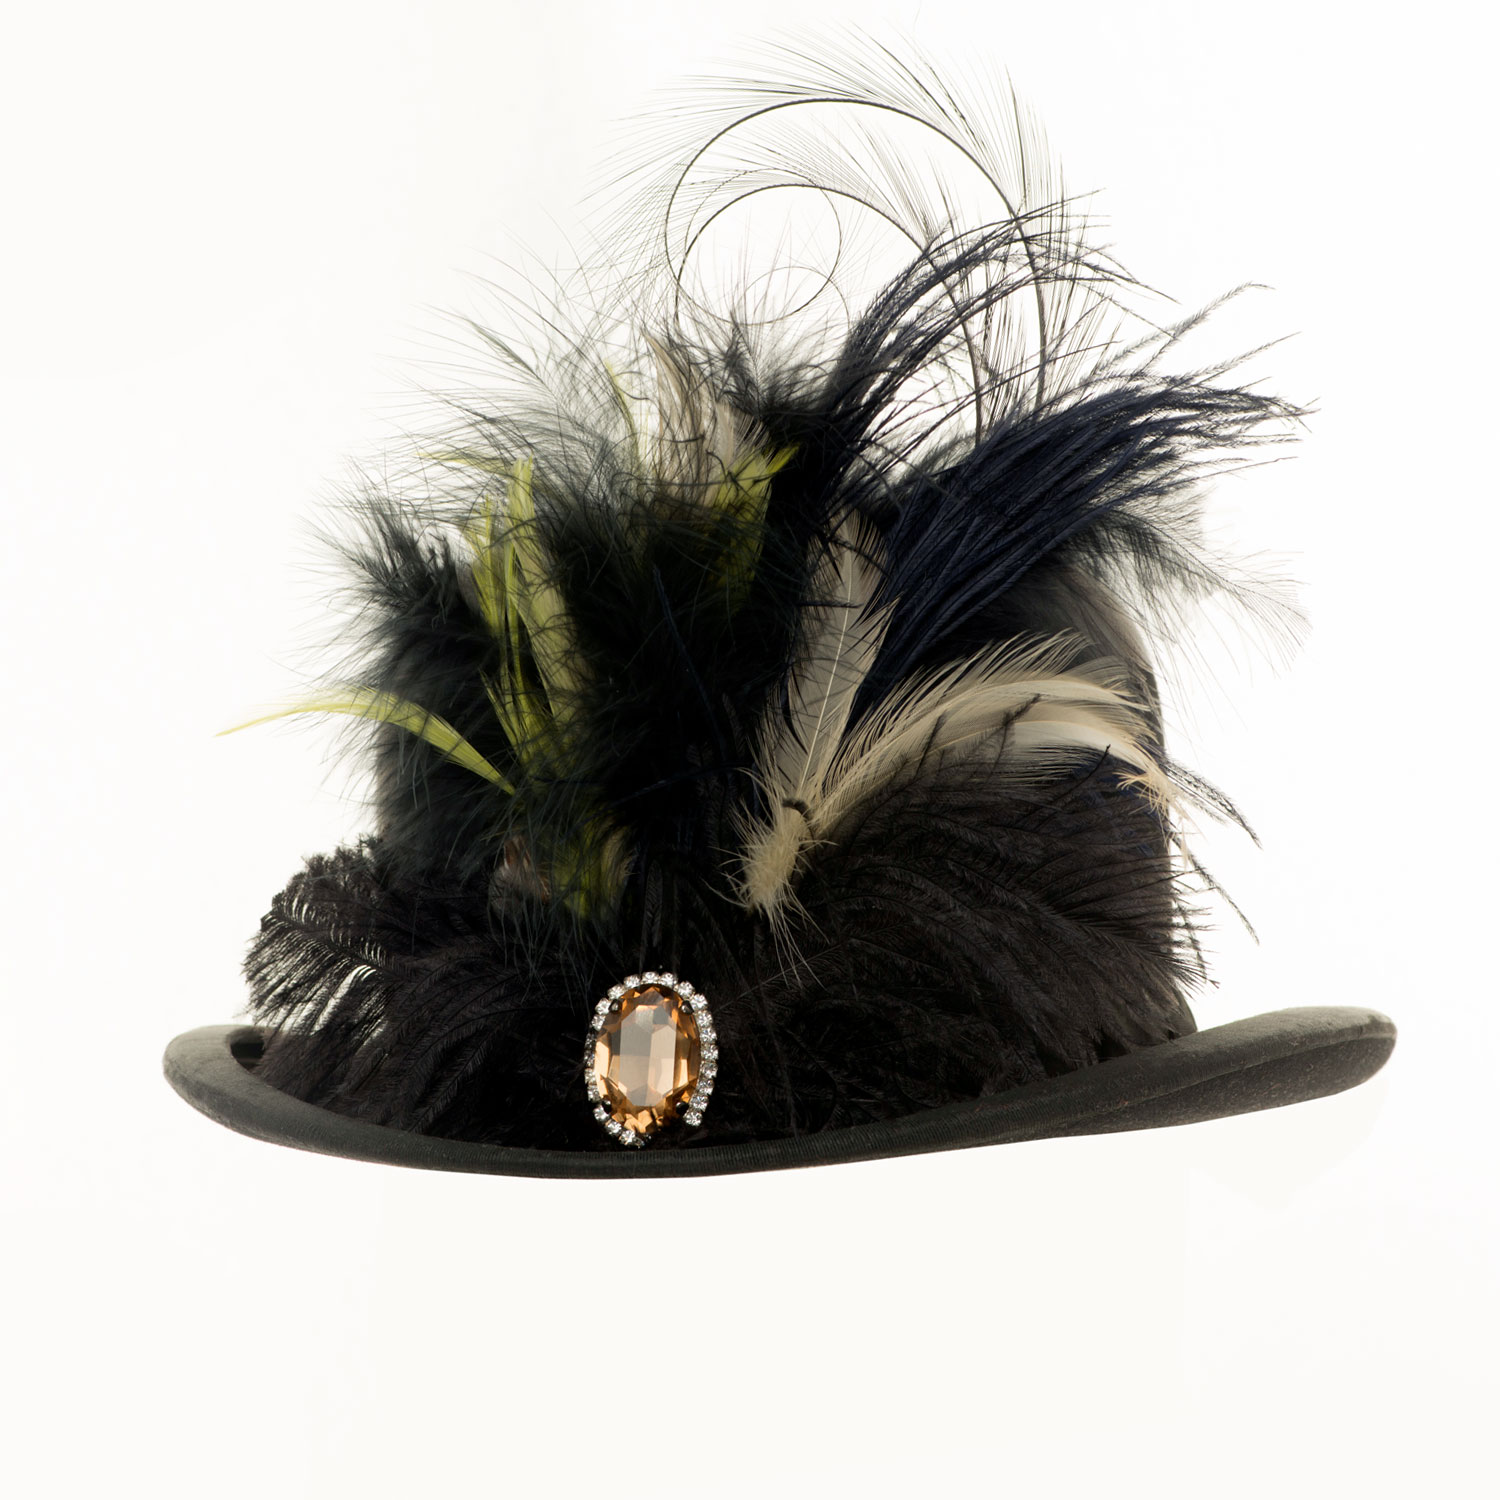 VINTAGE BOWLER HAT WITH BROOCH AND OSTRICH FEATHERS